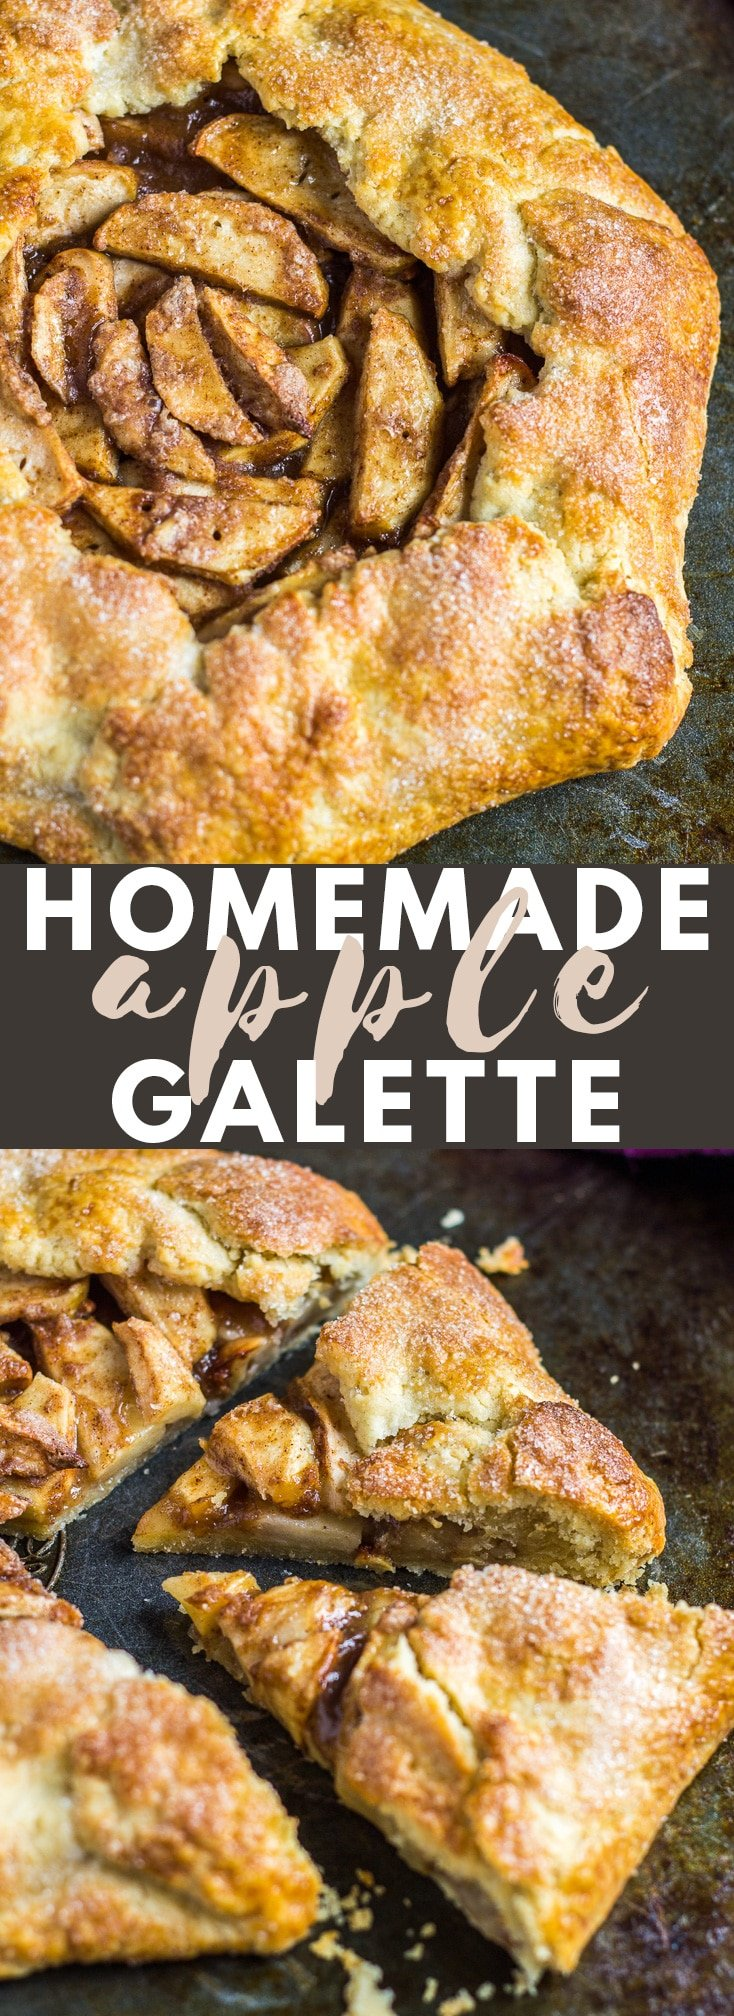 Homemade Apple Galette- A deliciously flaky, buttery pie crust filled with warm, spiced, tender apple slices. The ultimate comforting dessert! #homemade #apple #galette #recipe